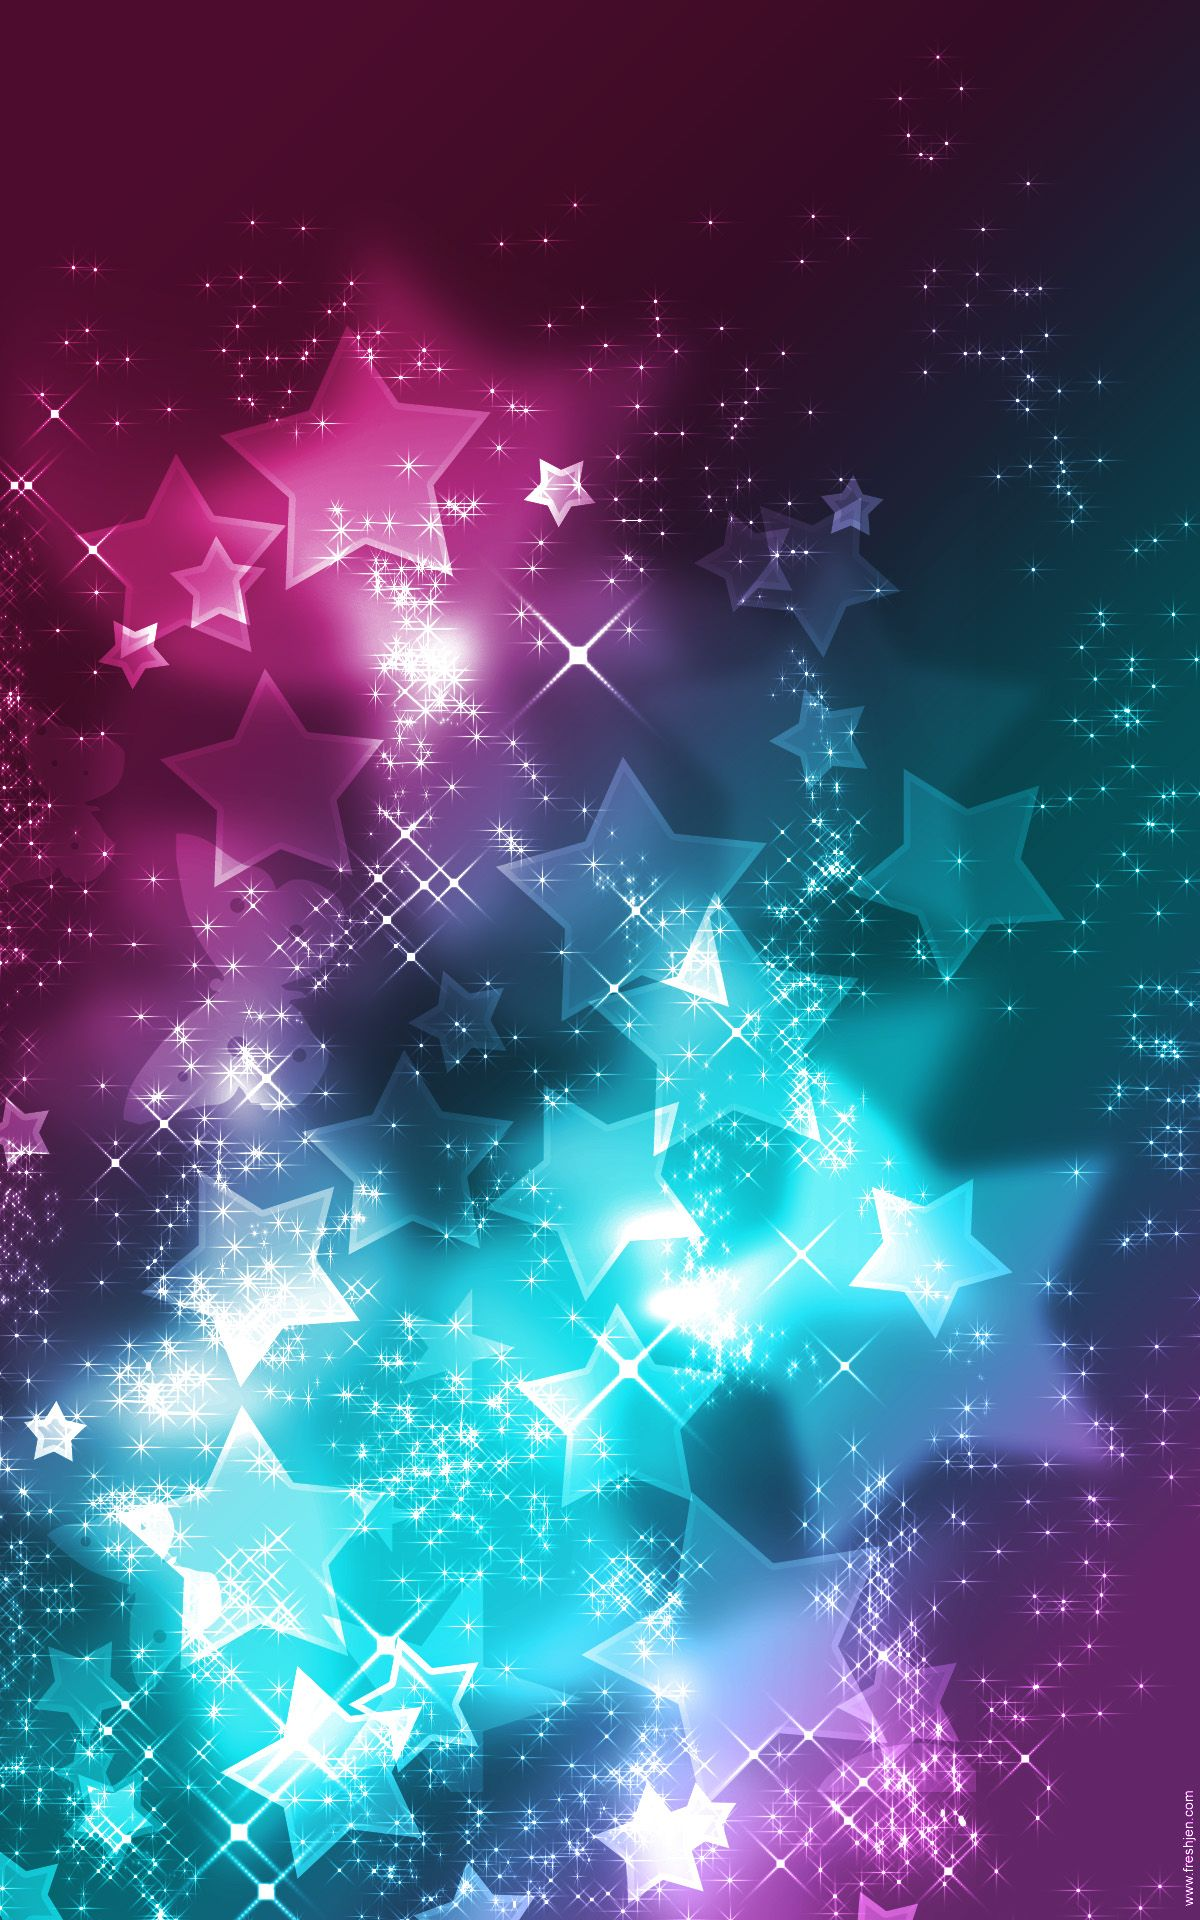 Pink Teal Purple Stars Wallpaper Background Pretty Wallpapers Love Wallpaper Star Wallpaper